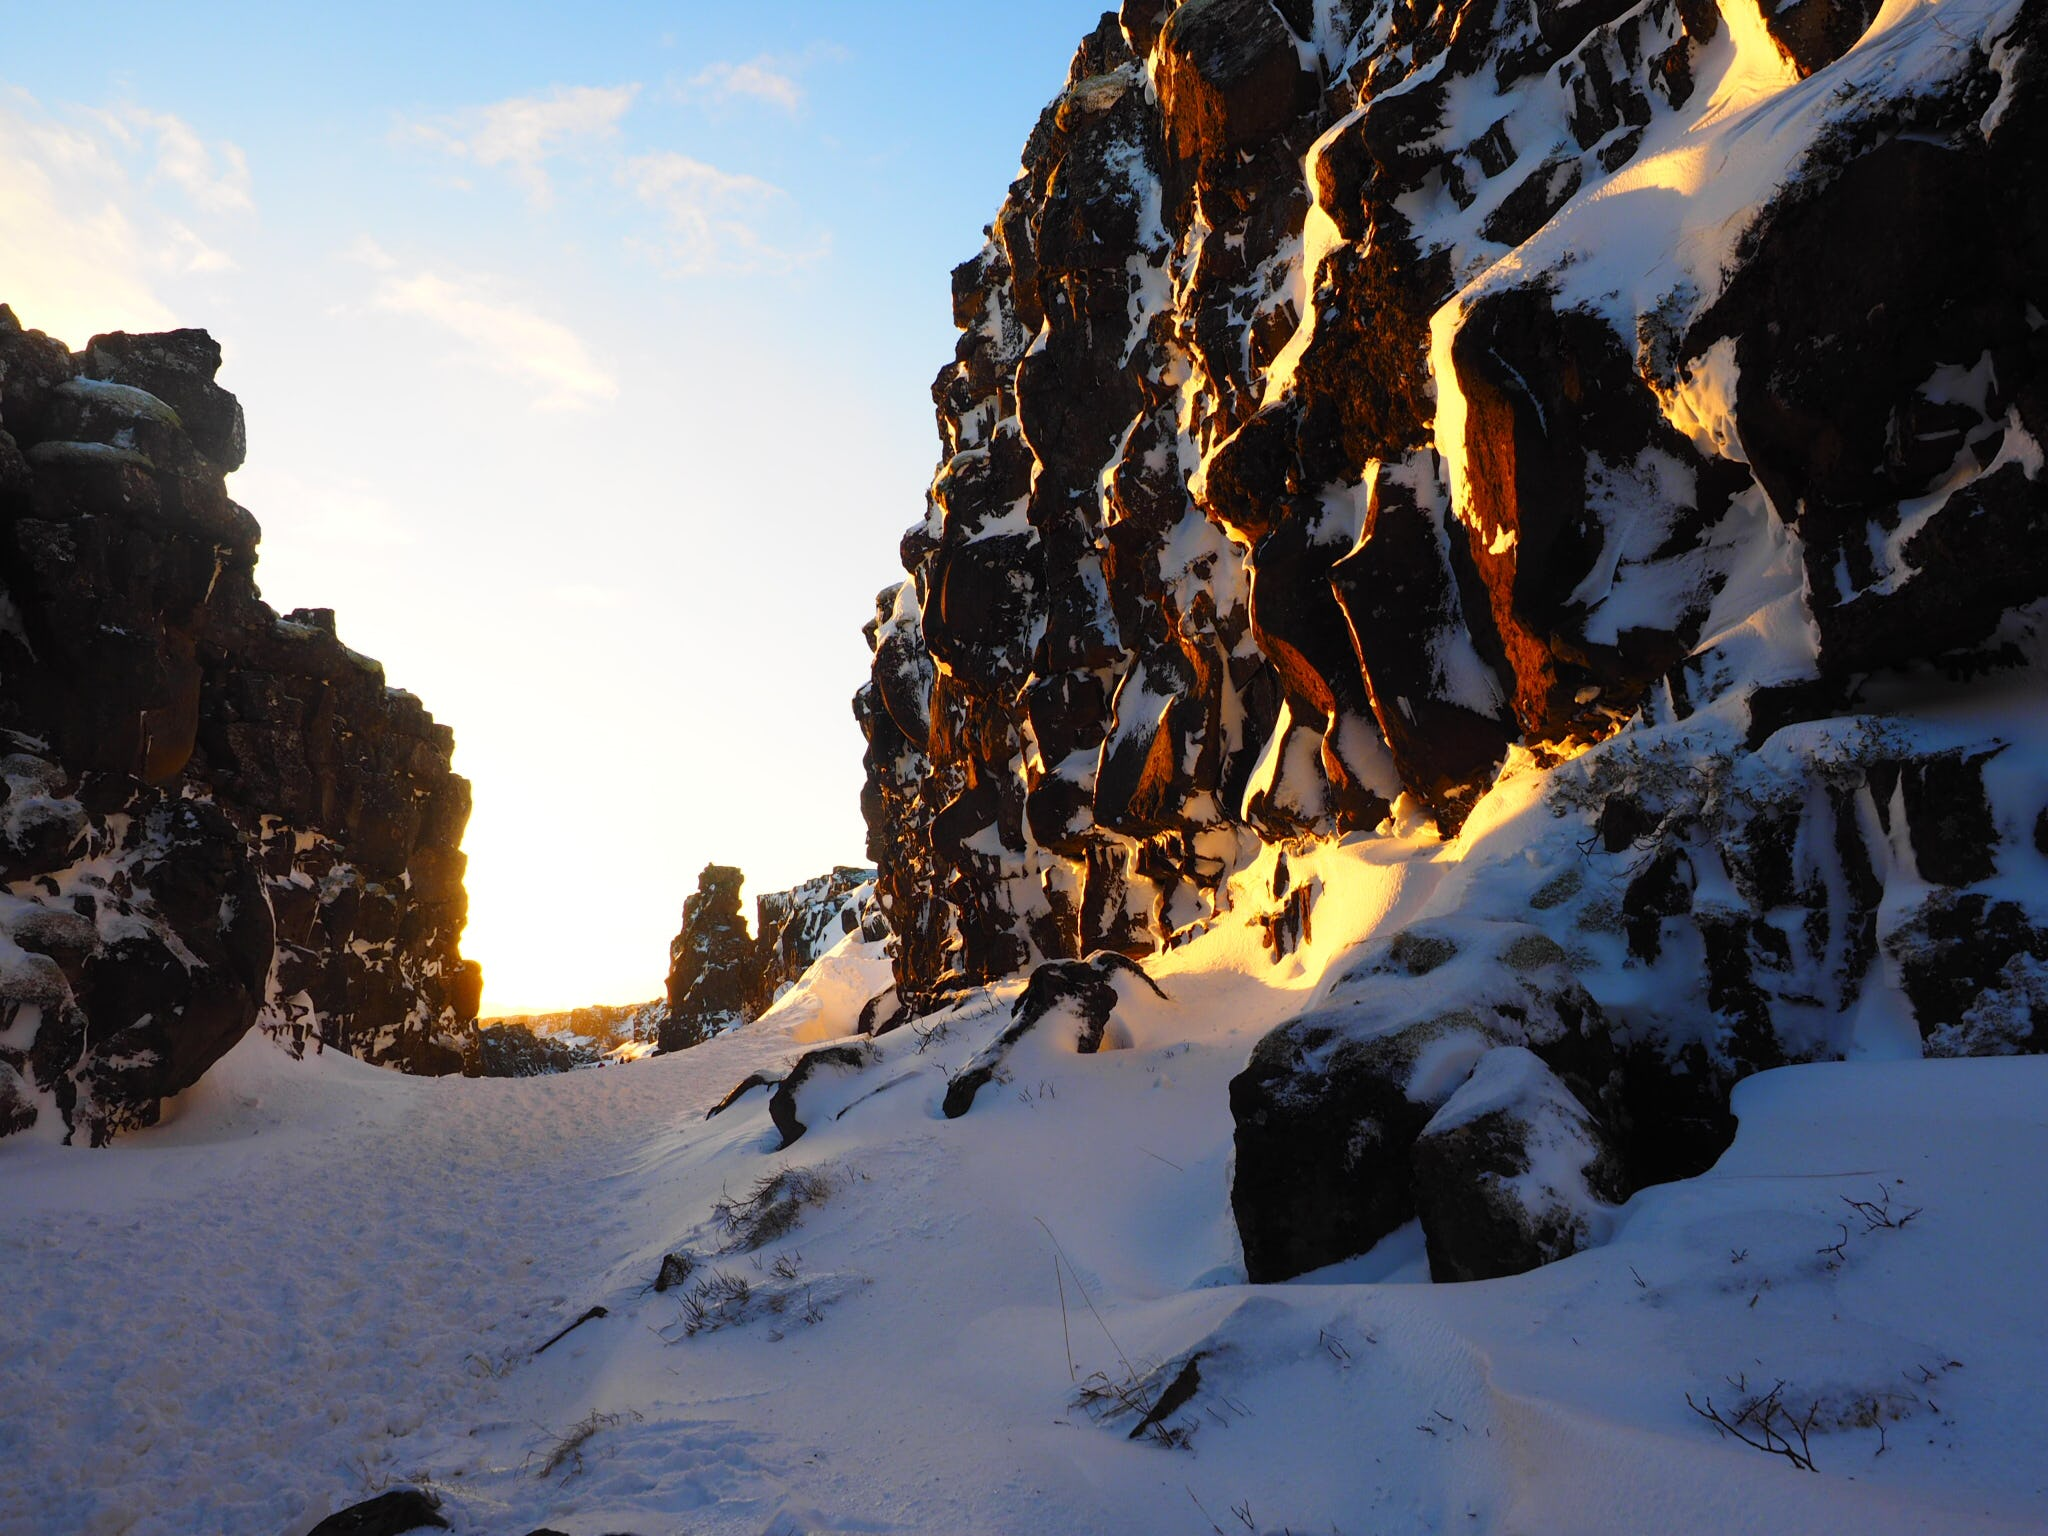 Sun beams down on snowy rock formations in a gorge in Þingvellir